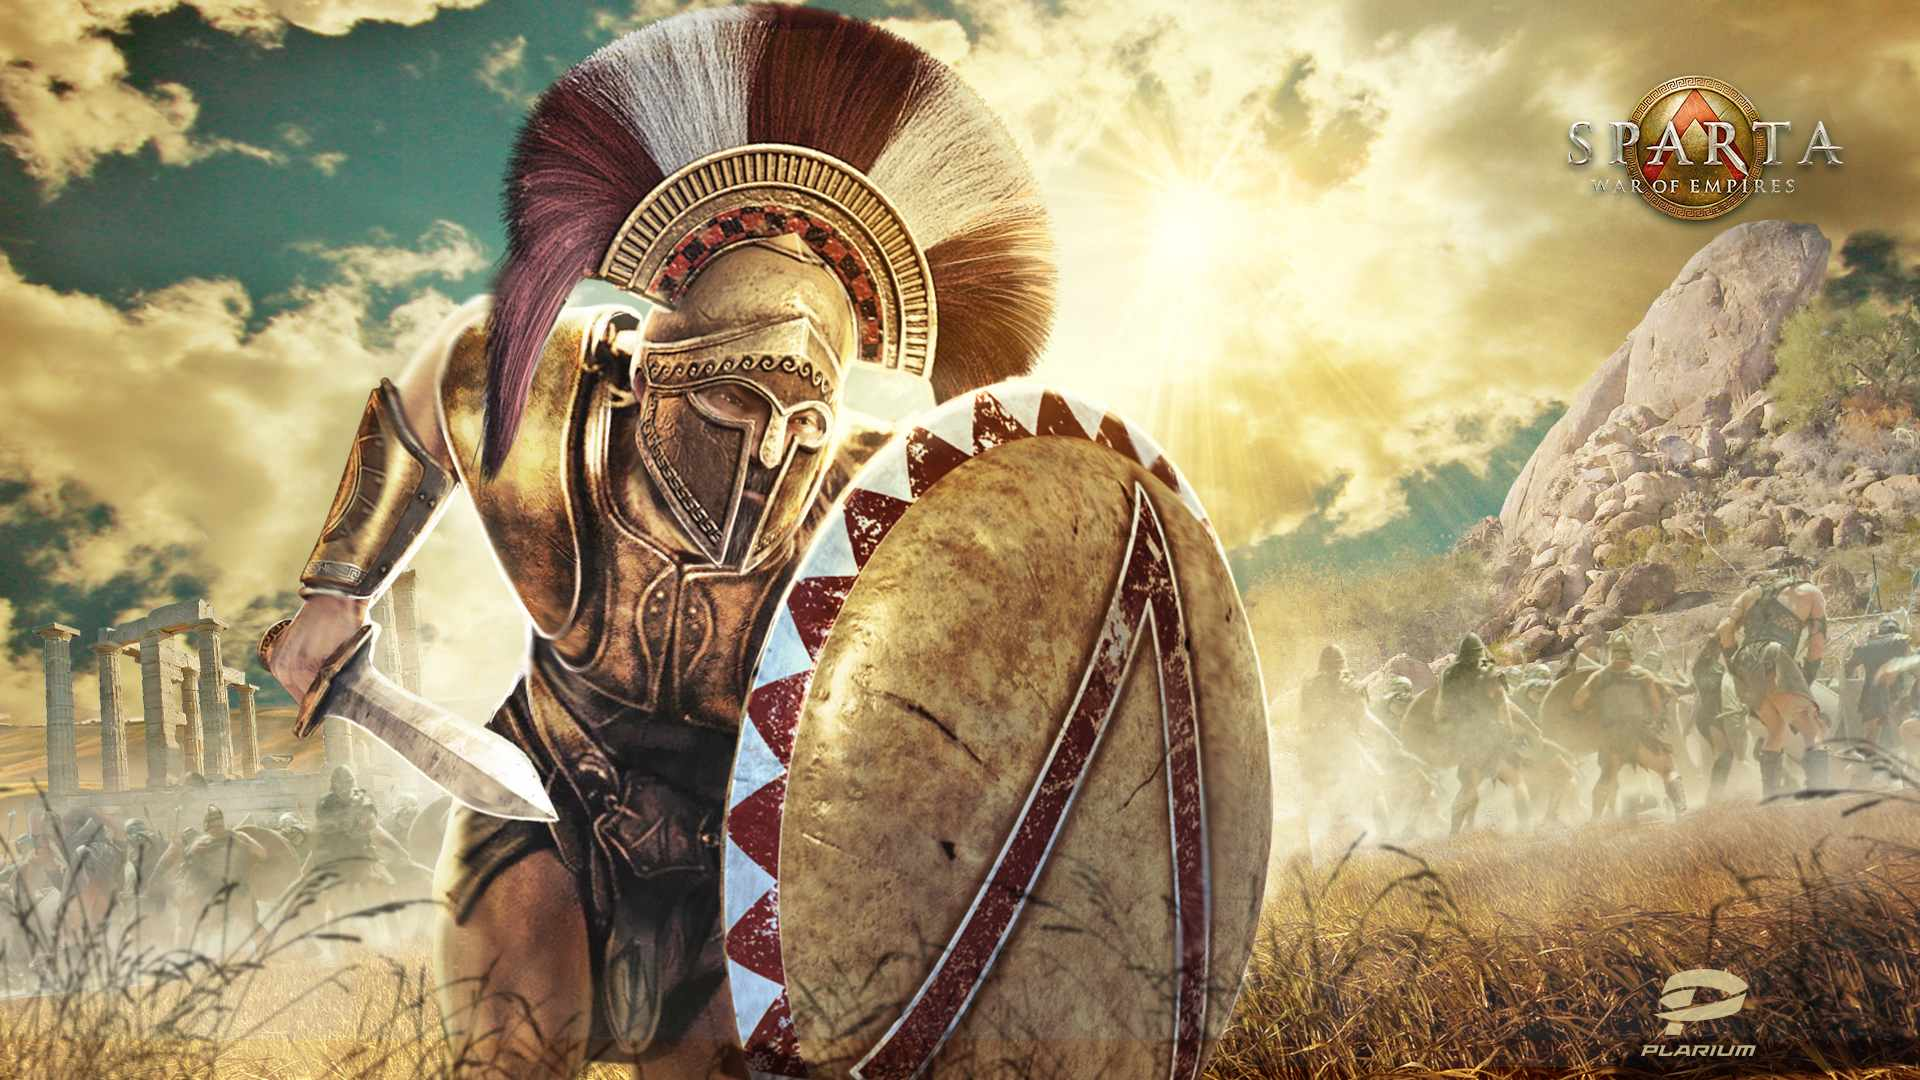 Sparta: War of Empires Wallpapers